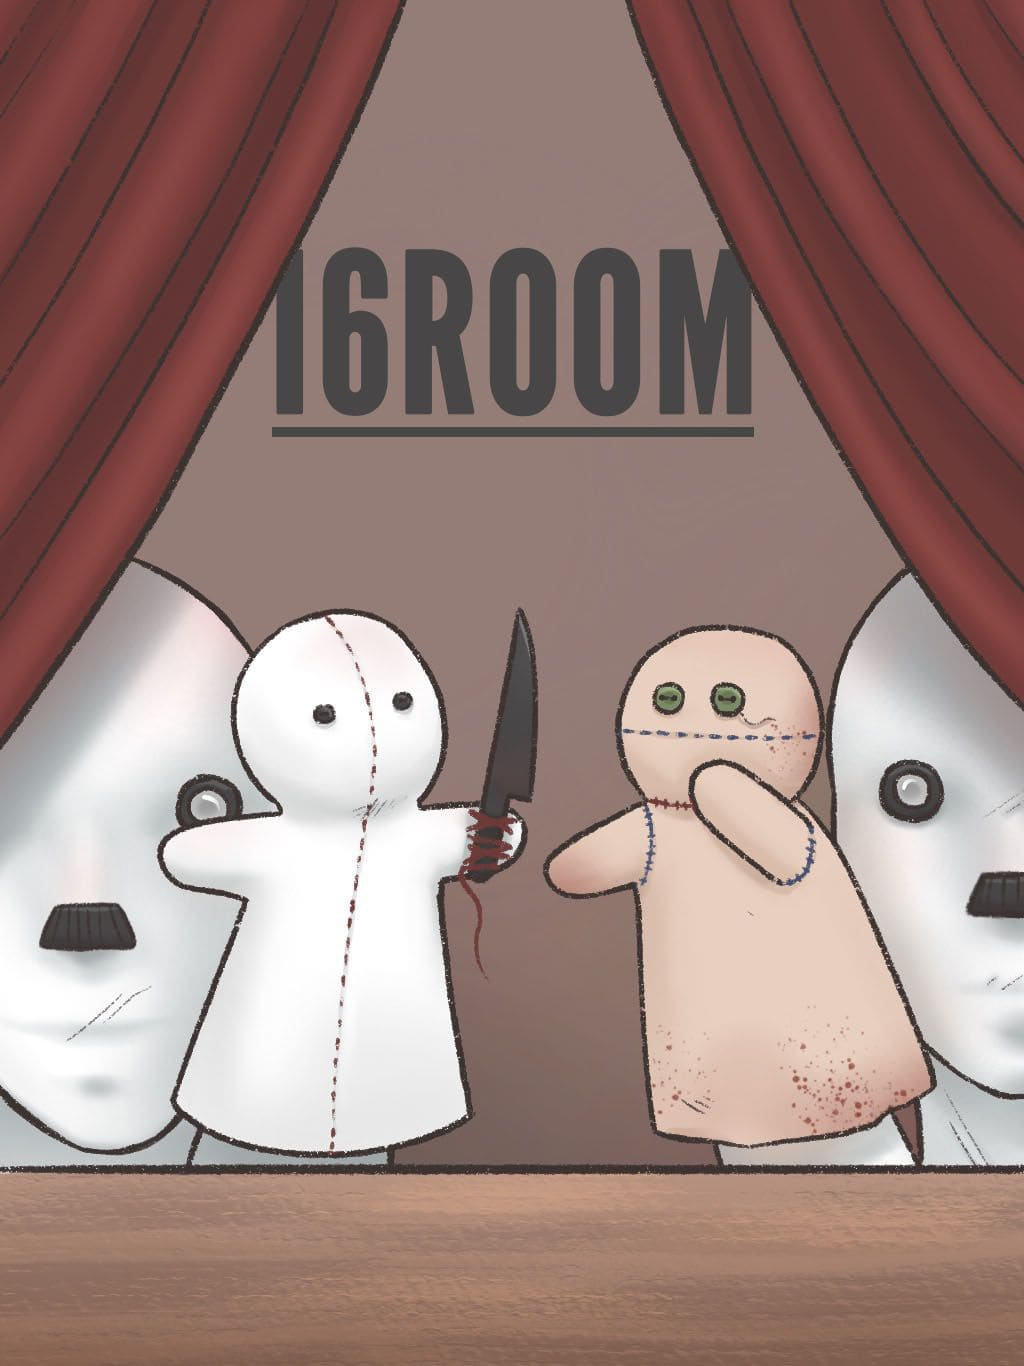 16 ROOMS